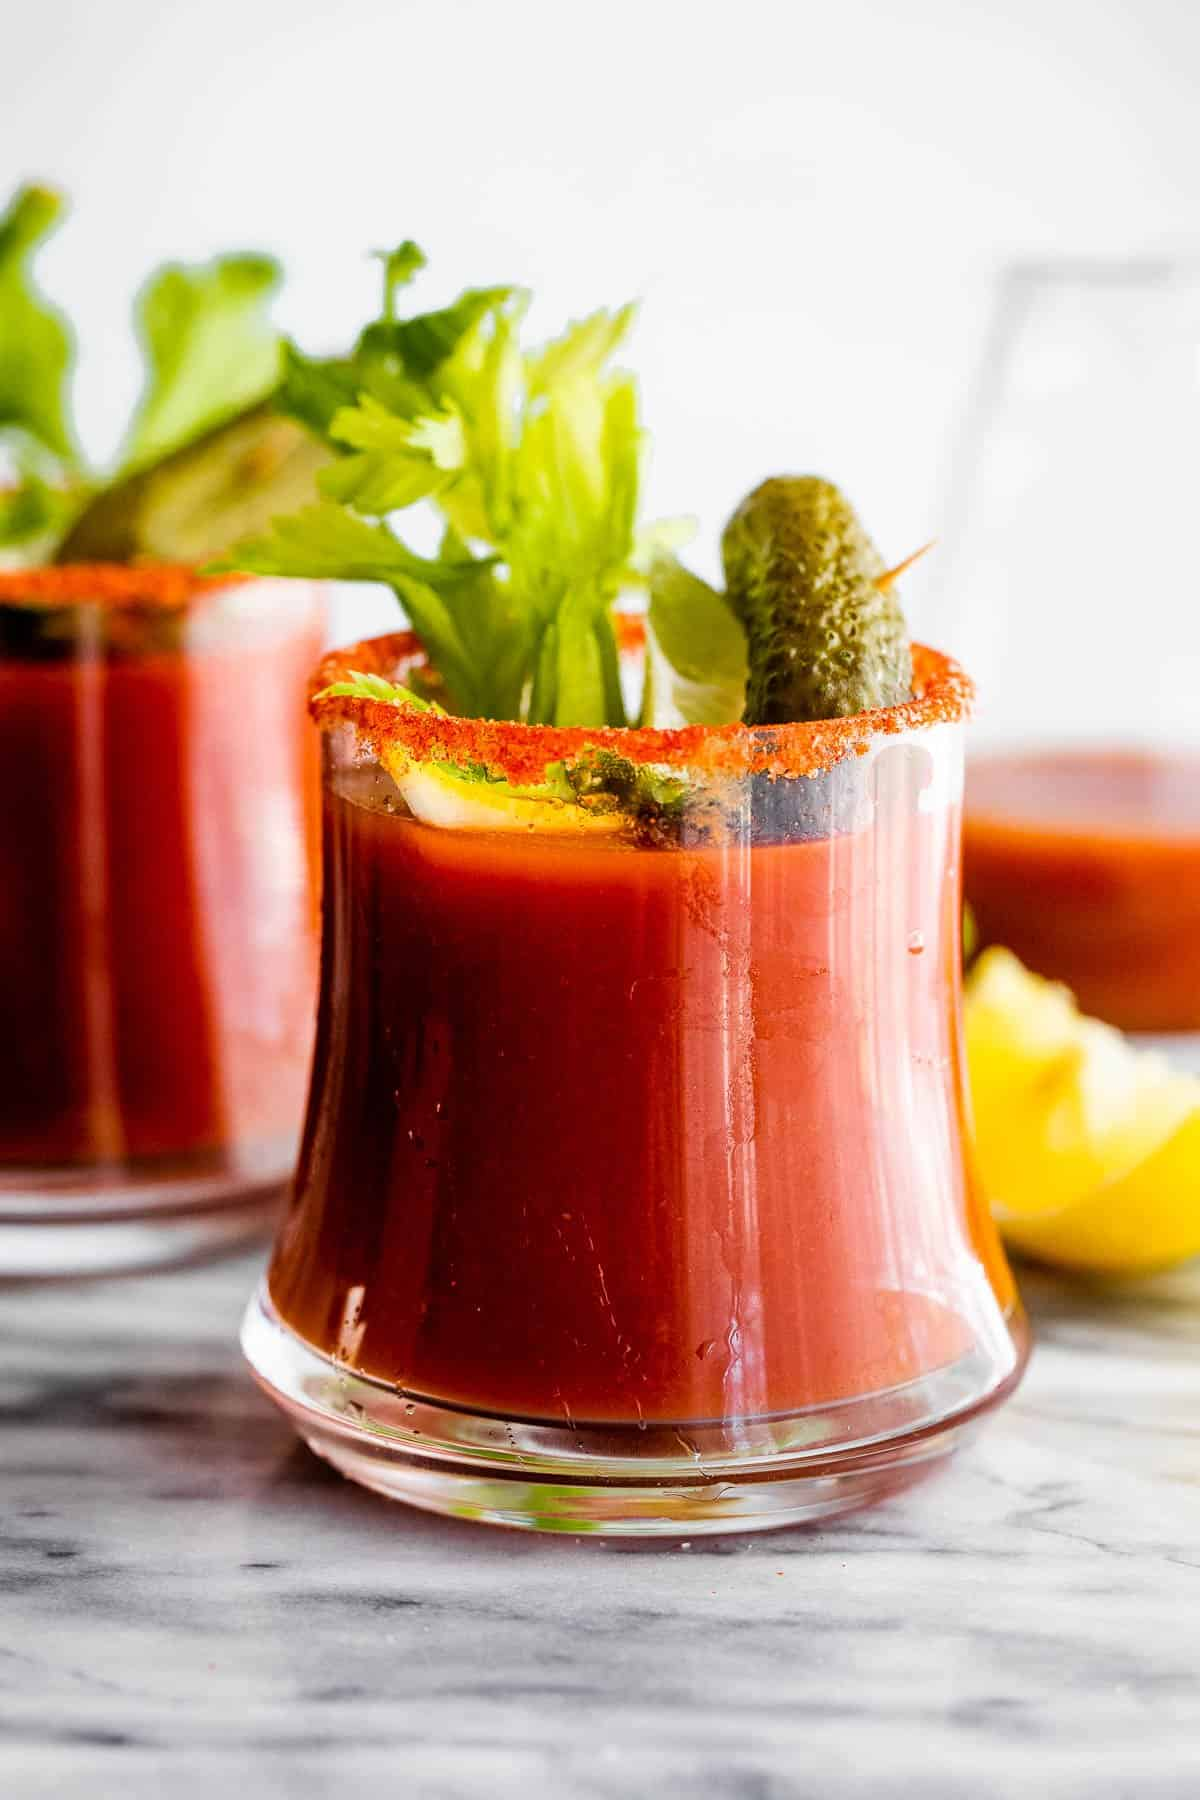 two glasses with Bloody Mary cocktail garnished with pickles and celery sticks